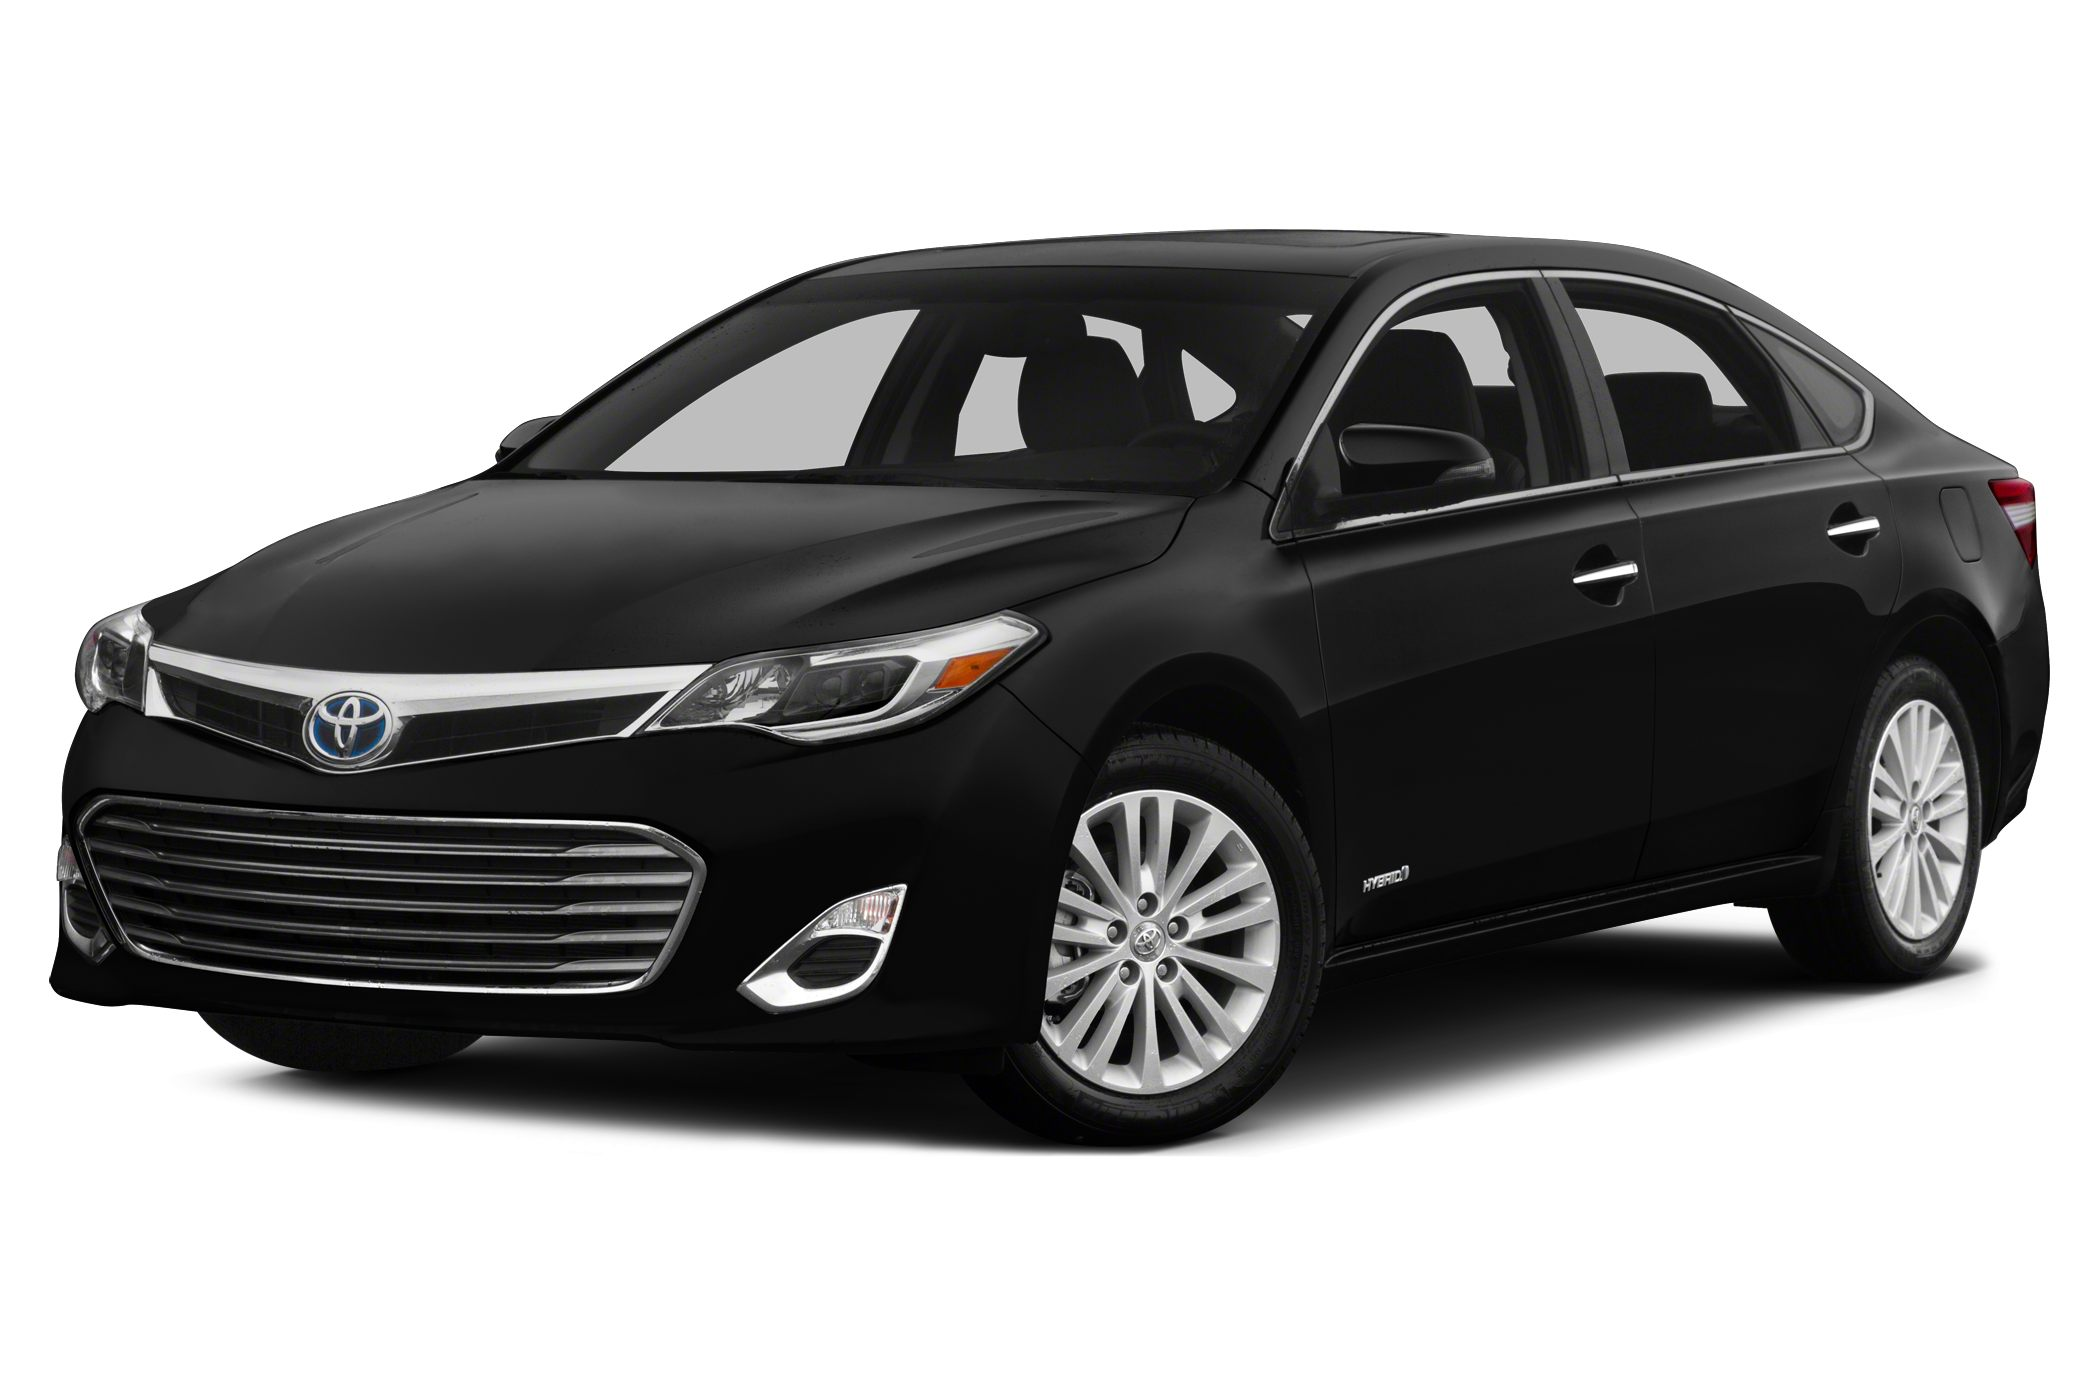 2013 Toyota Avalon Hybrid Information